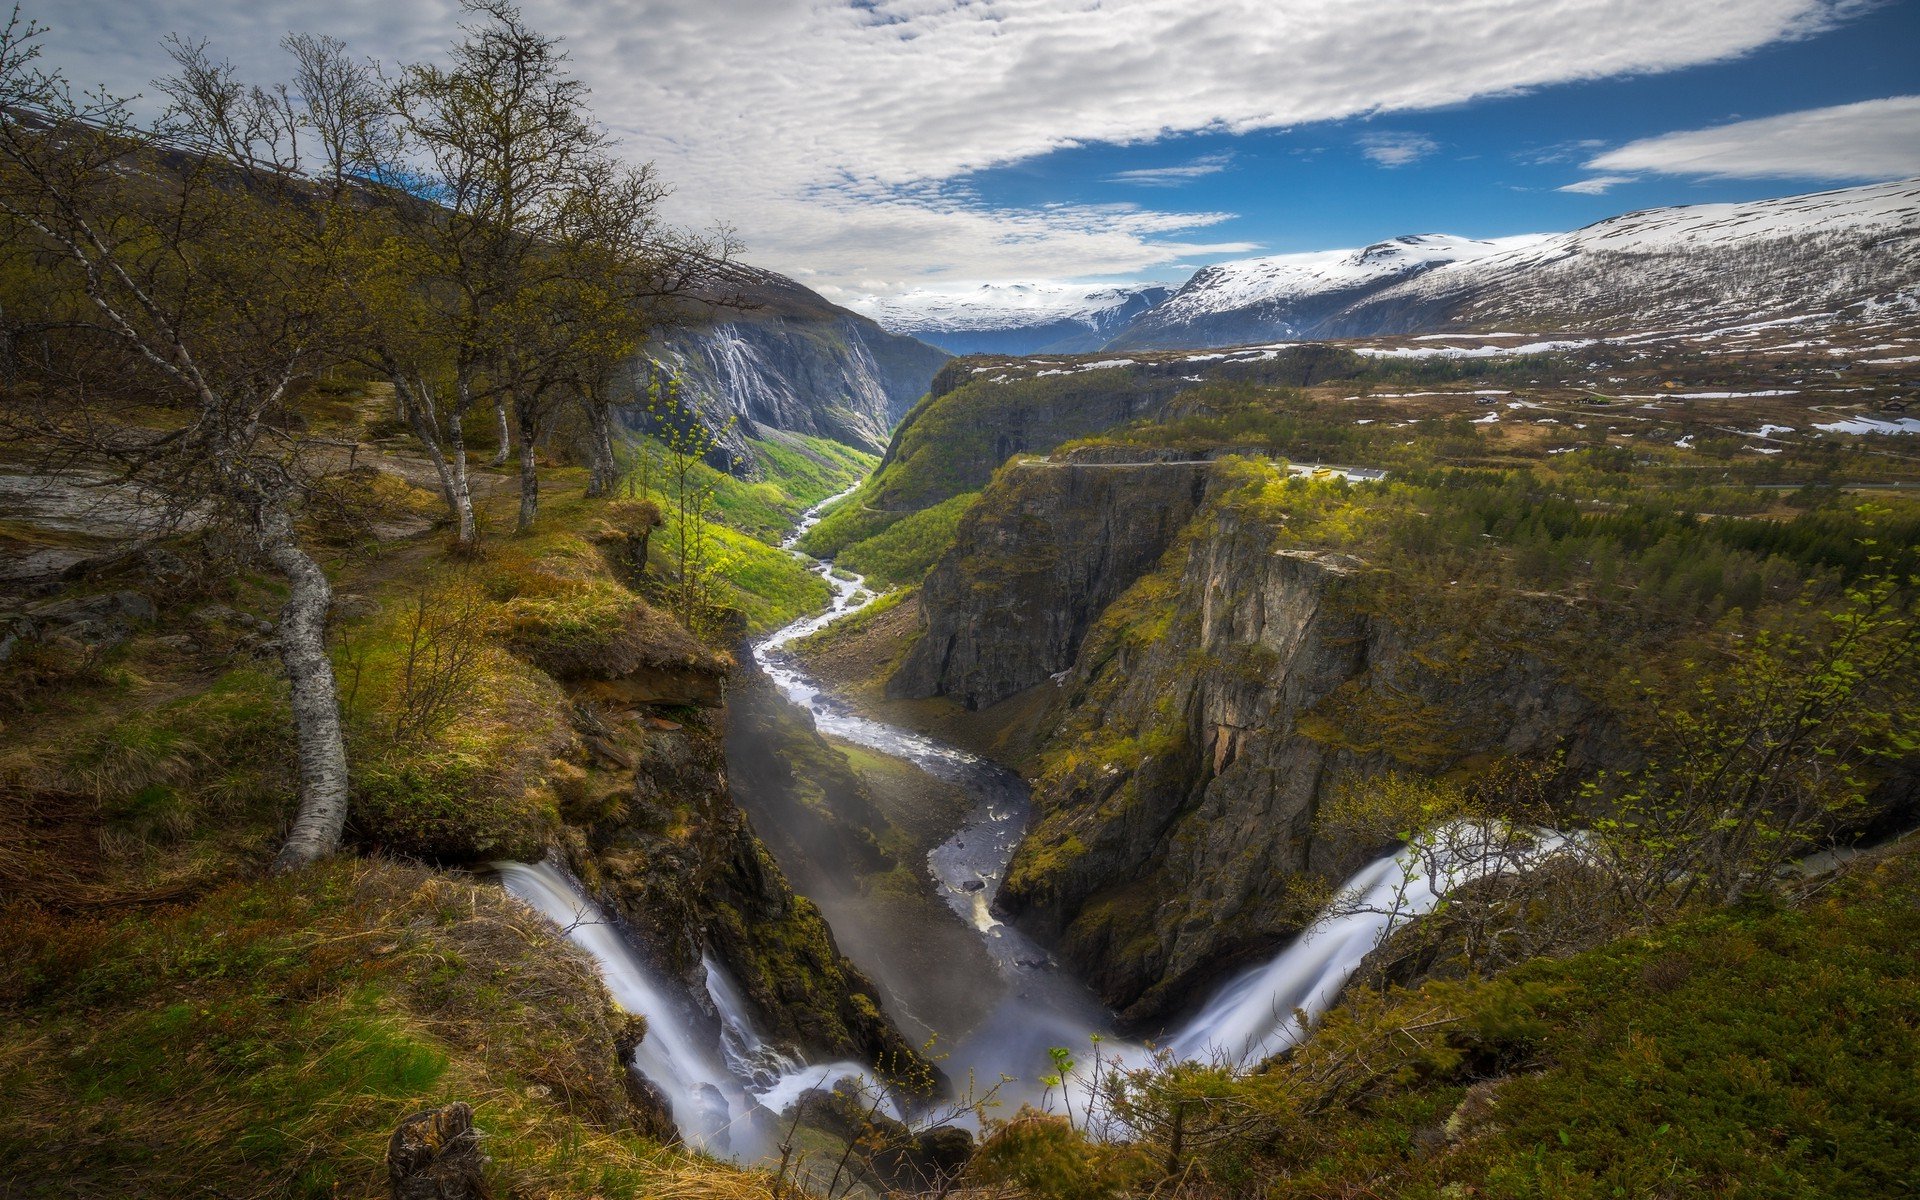 Fall Coastal Desktop Wallpaper Nature Landscape Waterfall Canyon River Norway Trees